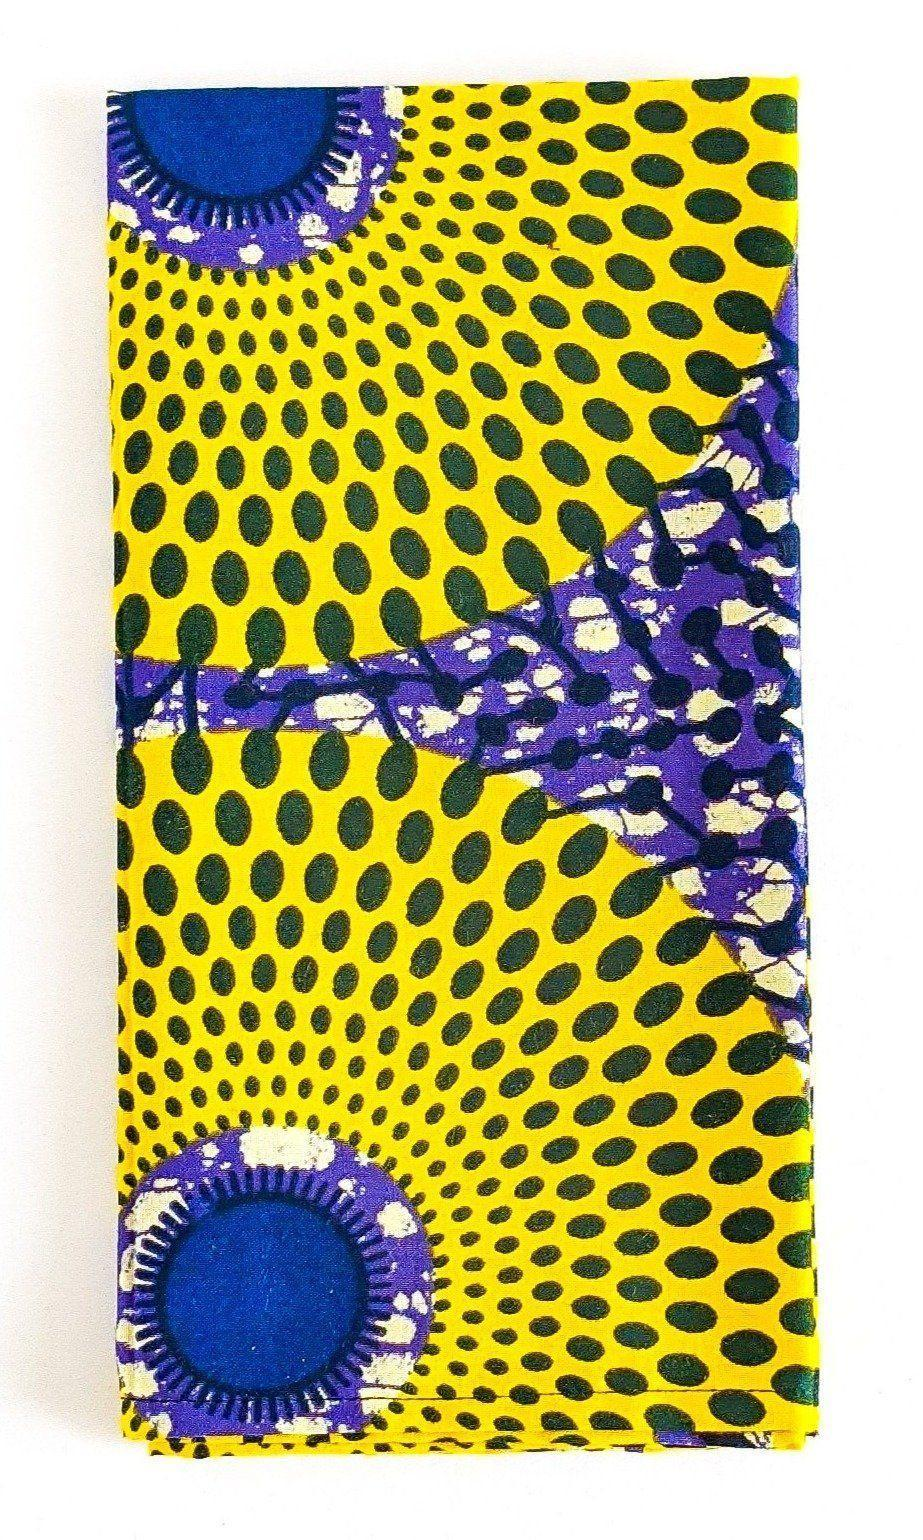 """<p>reflektiondesign.com</p><p><strong>$10.00</strong></p><p><a href=""""https://www.reflektiondesign.com/collections/tableware/products/purple-yellow-ankara-fabric-napkins"""" rel=""""nofollow noopener"""" target=""""_blank"""" data-ylk=""""slk:Shop Now"""" class=""""link rapid-noclick-resp"""">Shop Now</a></p><p>I love adding a fun patterned napkin when setting my table. I find it's a perfect conversation starter with my guests! These purple and yellow napkins are printed with a pattern native to Ghana. </p>"""